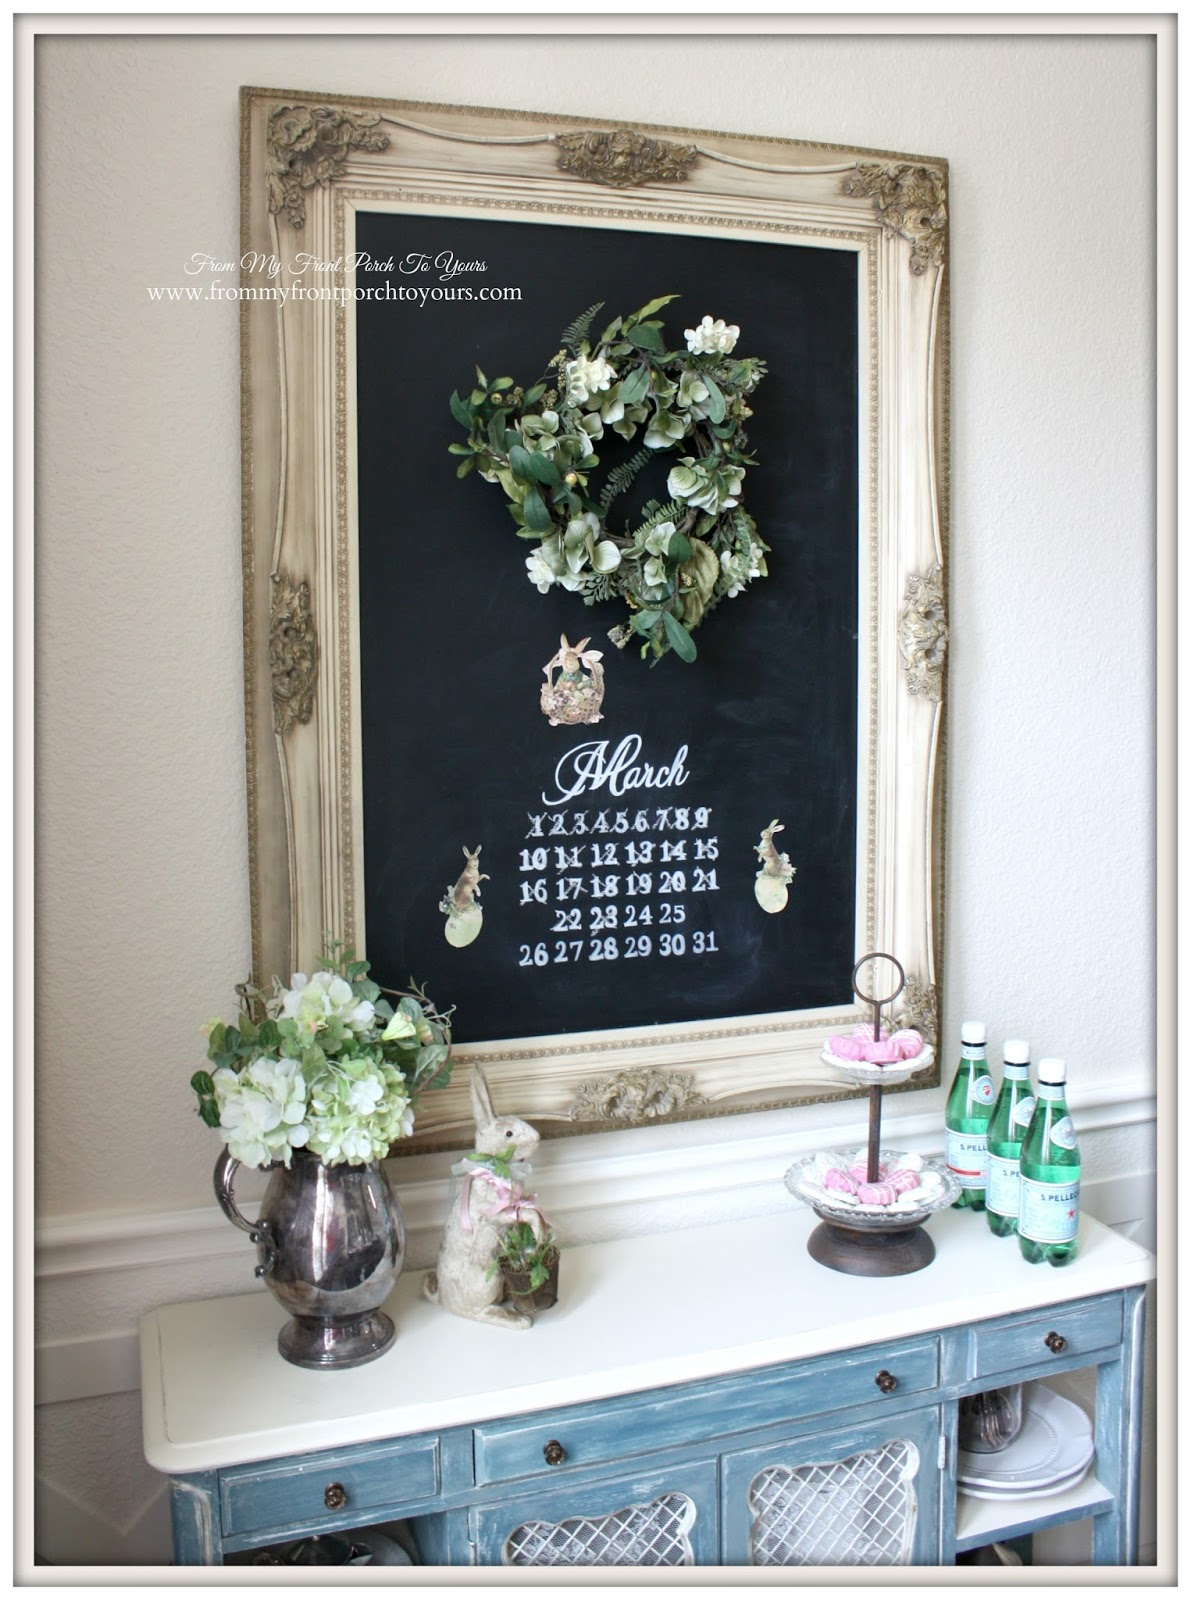 Dining room Chalkboard-French Farmhouse Easter Dining Room- From My Front Porch To Yours